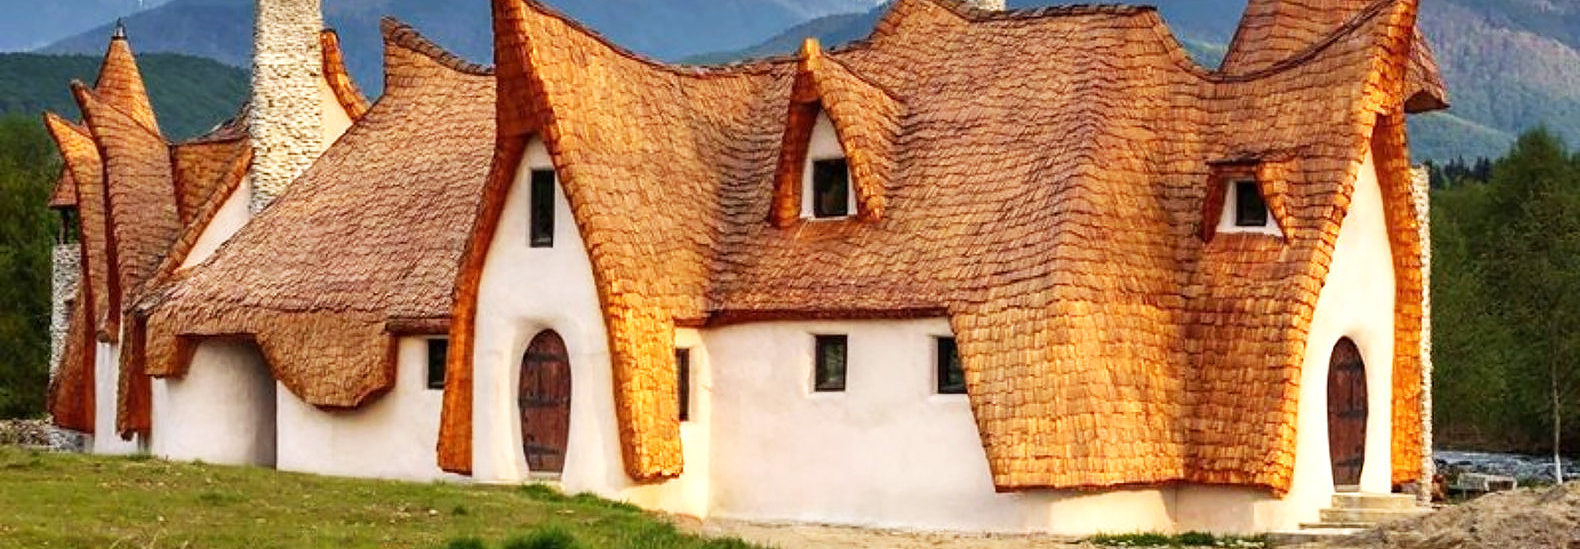 Romania S Eco Friendly Clay Castle Hotel Will Soon Begin Taking Reservations Inhabitat Green